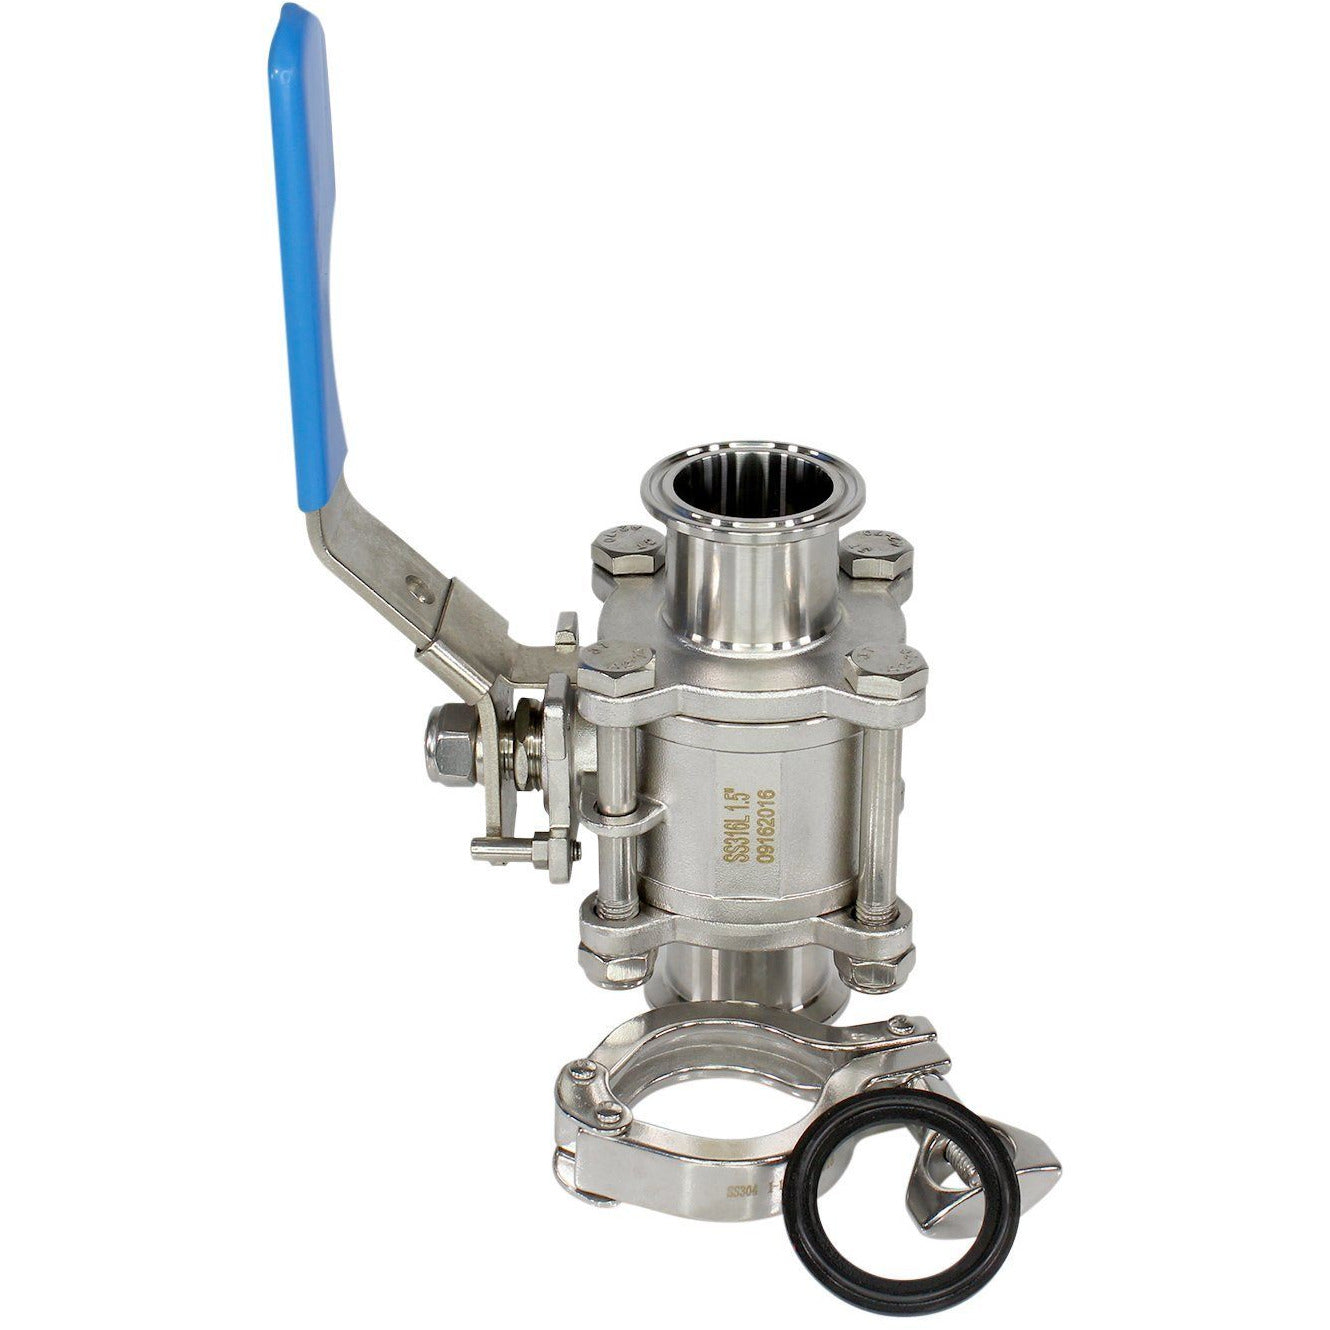 316L SS Tri-Clamp Ball Valve KIT - Nitrogen Tested Shop All Categories BVV 1-inch + Standard Clamp